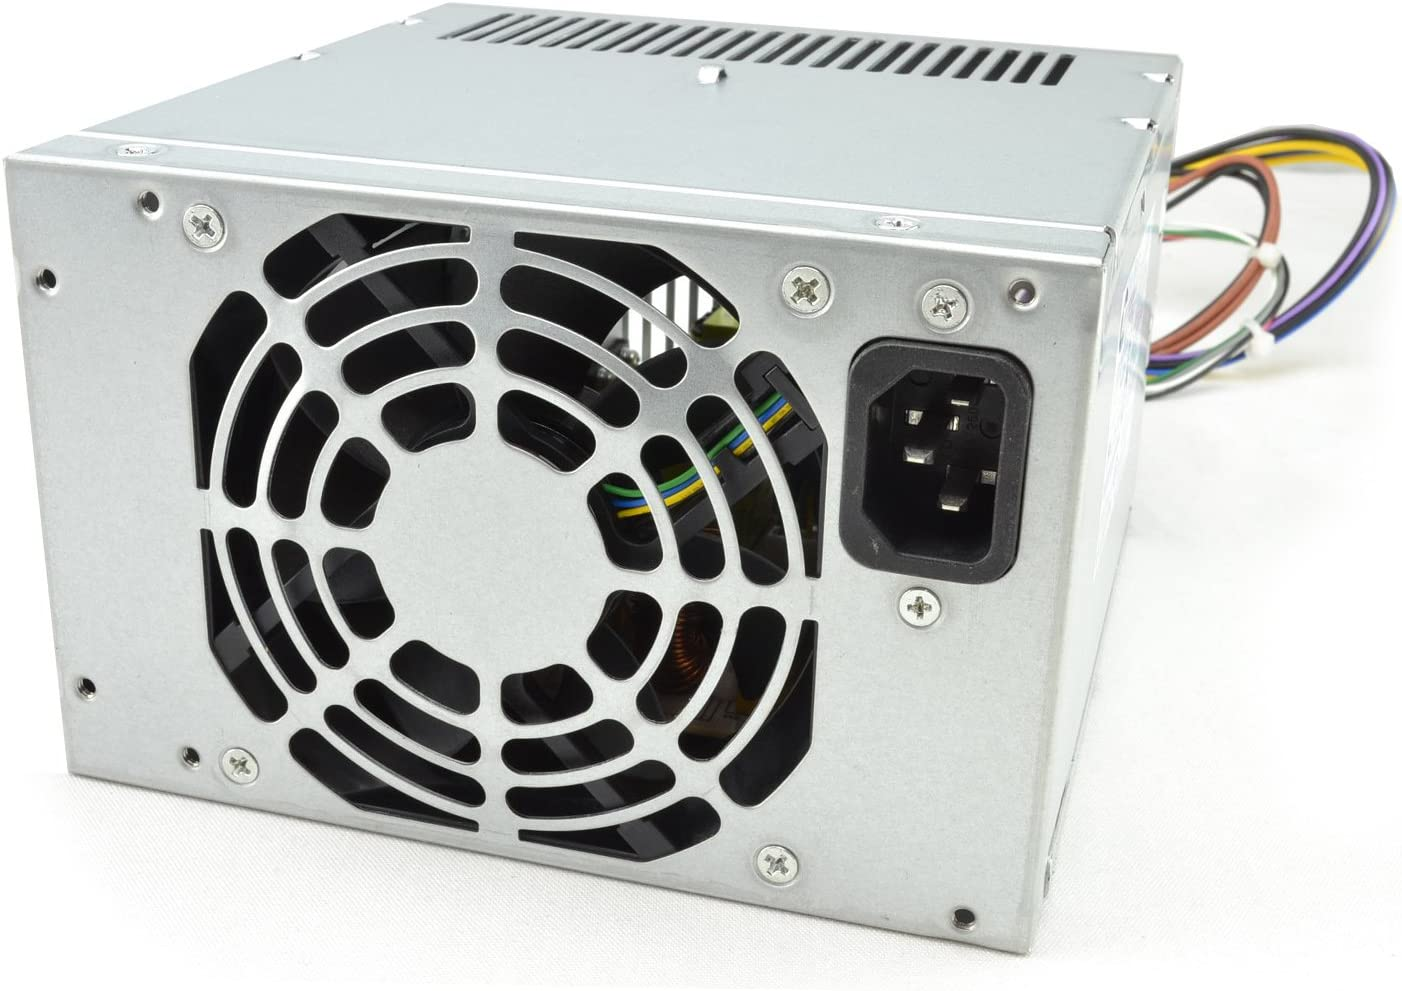 For Convertible Microtower series 320-Watts total power - Four 12VDC output connections HP 613764-001 Power supply unit PSU CMT EPA 90/%